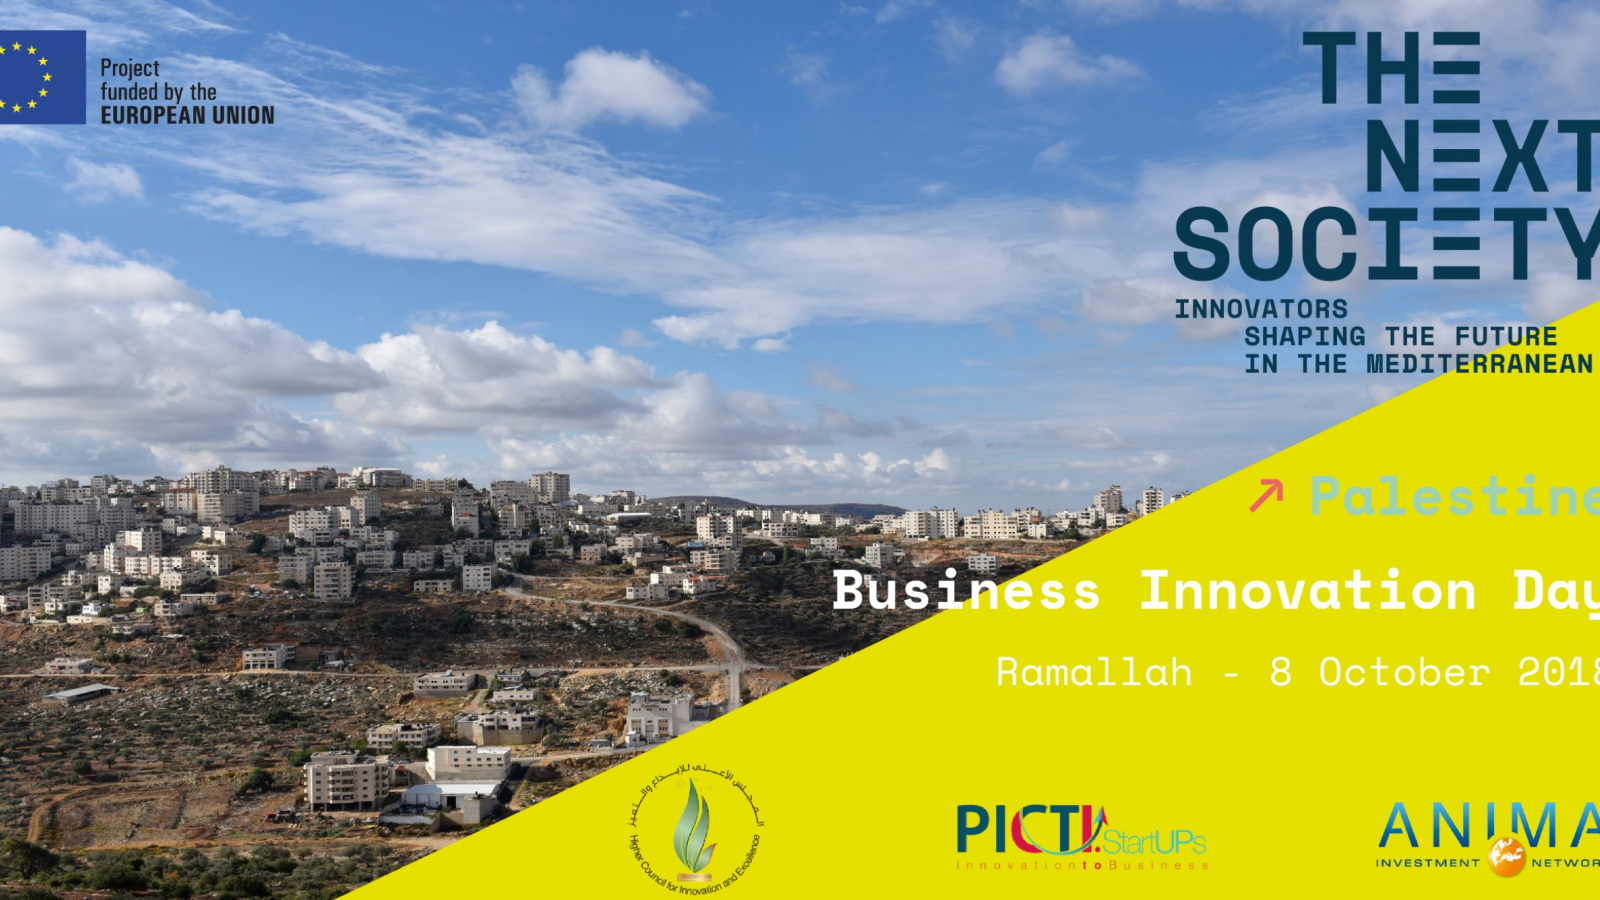 THE NEXT SOCIETY organises the Business Innovation Day in Palestine